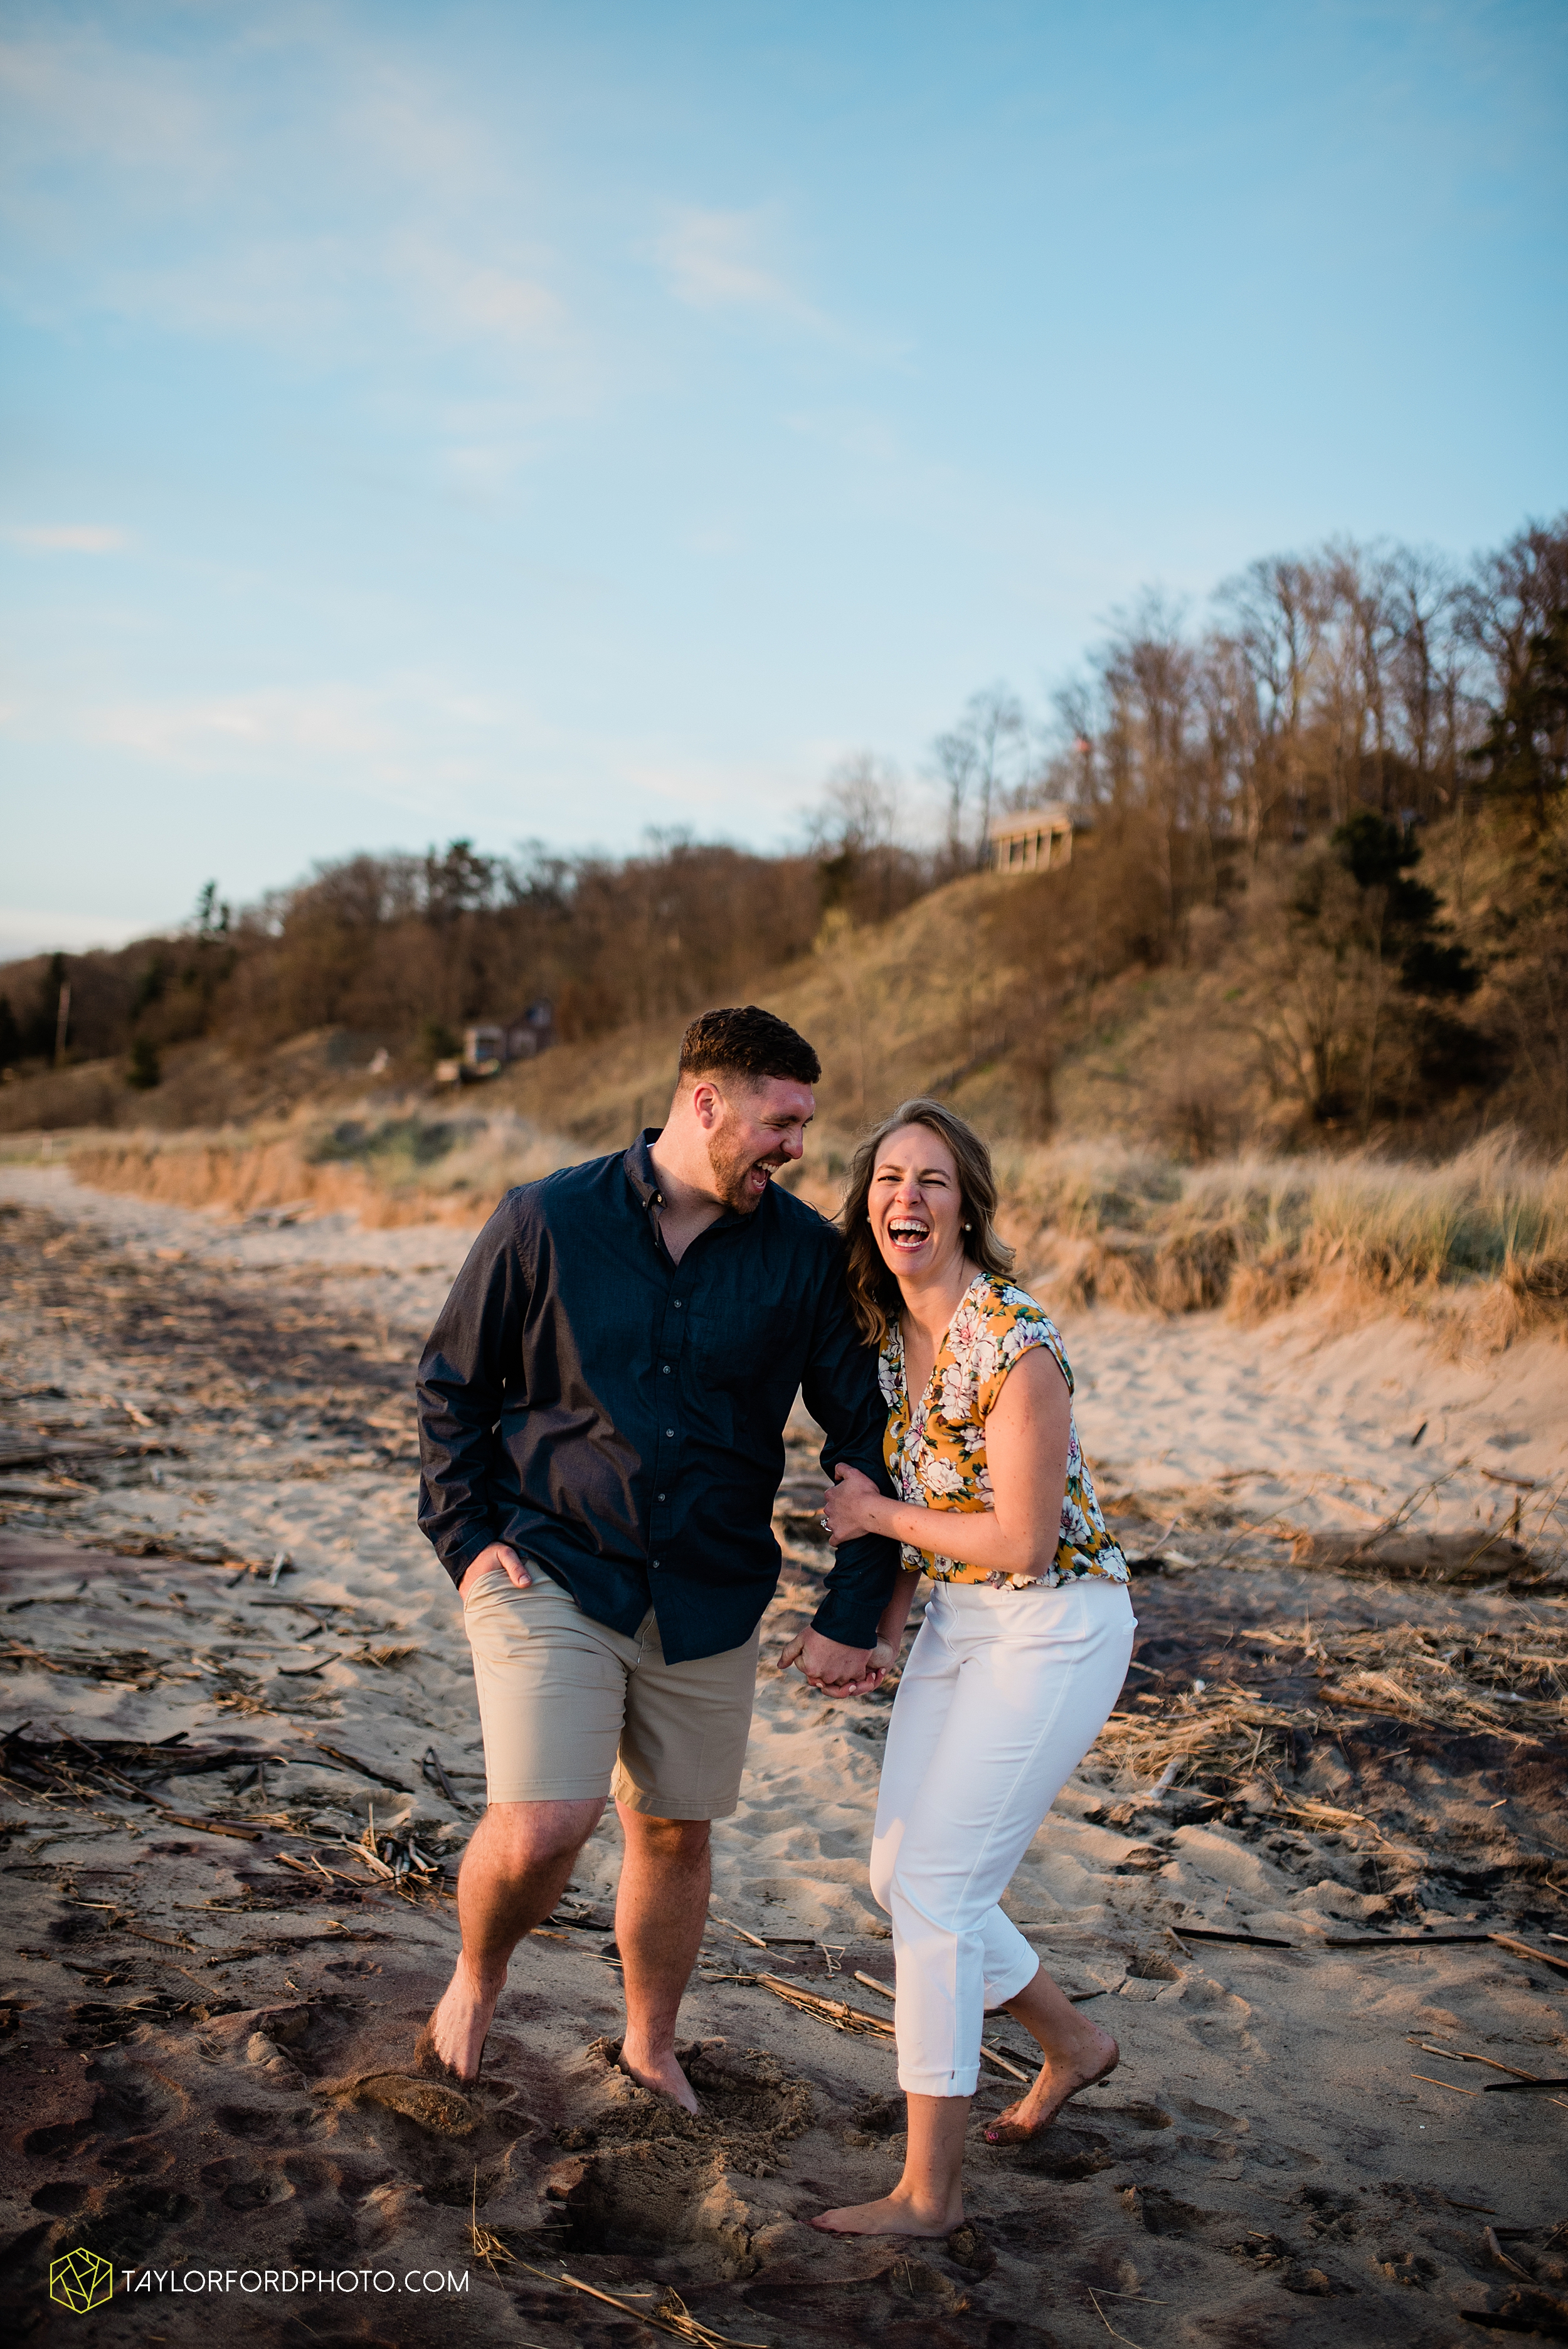 holland-michigan-tulip-time-downtown-hope-college-riverside-park-laketown-beach-lake-michigan-engagement-photographer-photography-taylor-ford-hirschy-photographer_2624.jpg